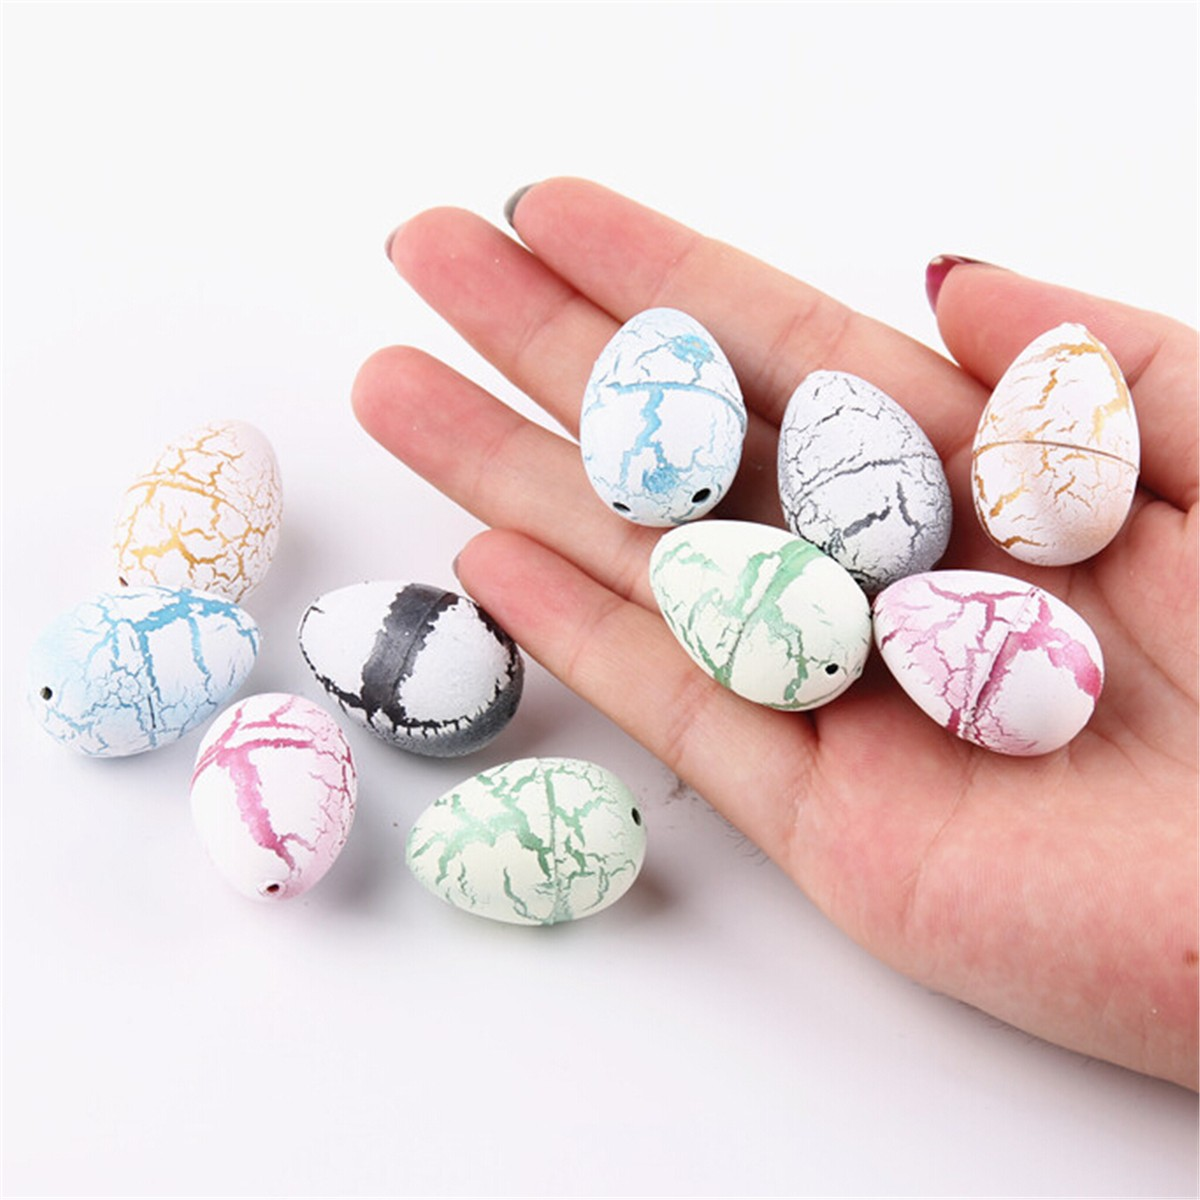 10PCS Hatching Growing Dinosaur Dino Eggs Add Water Magic Cute Children Toy Gift